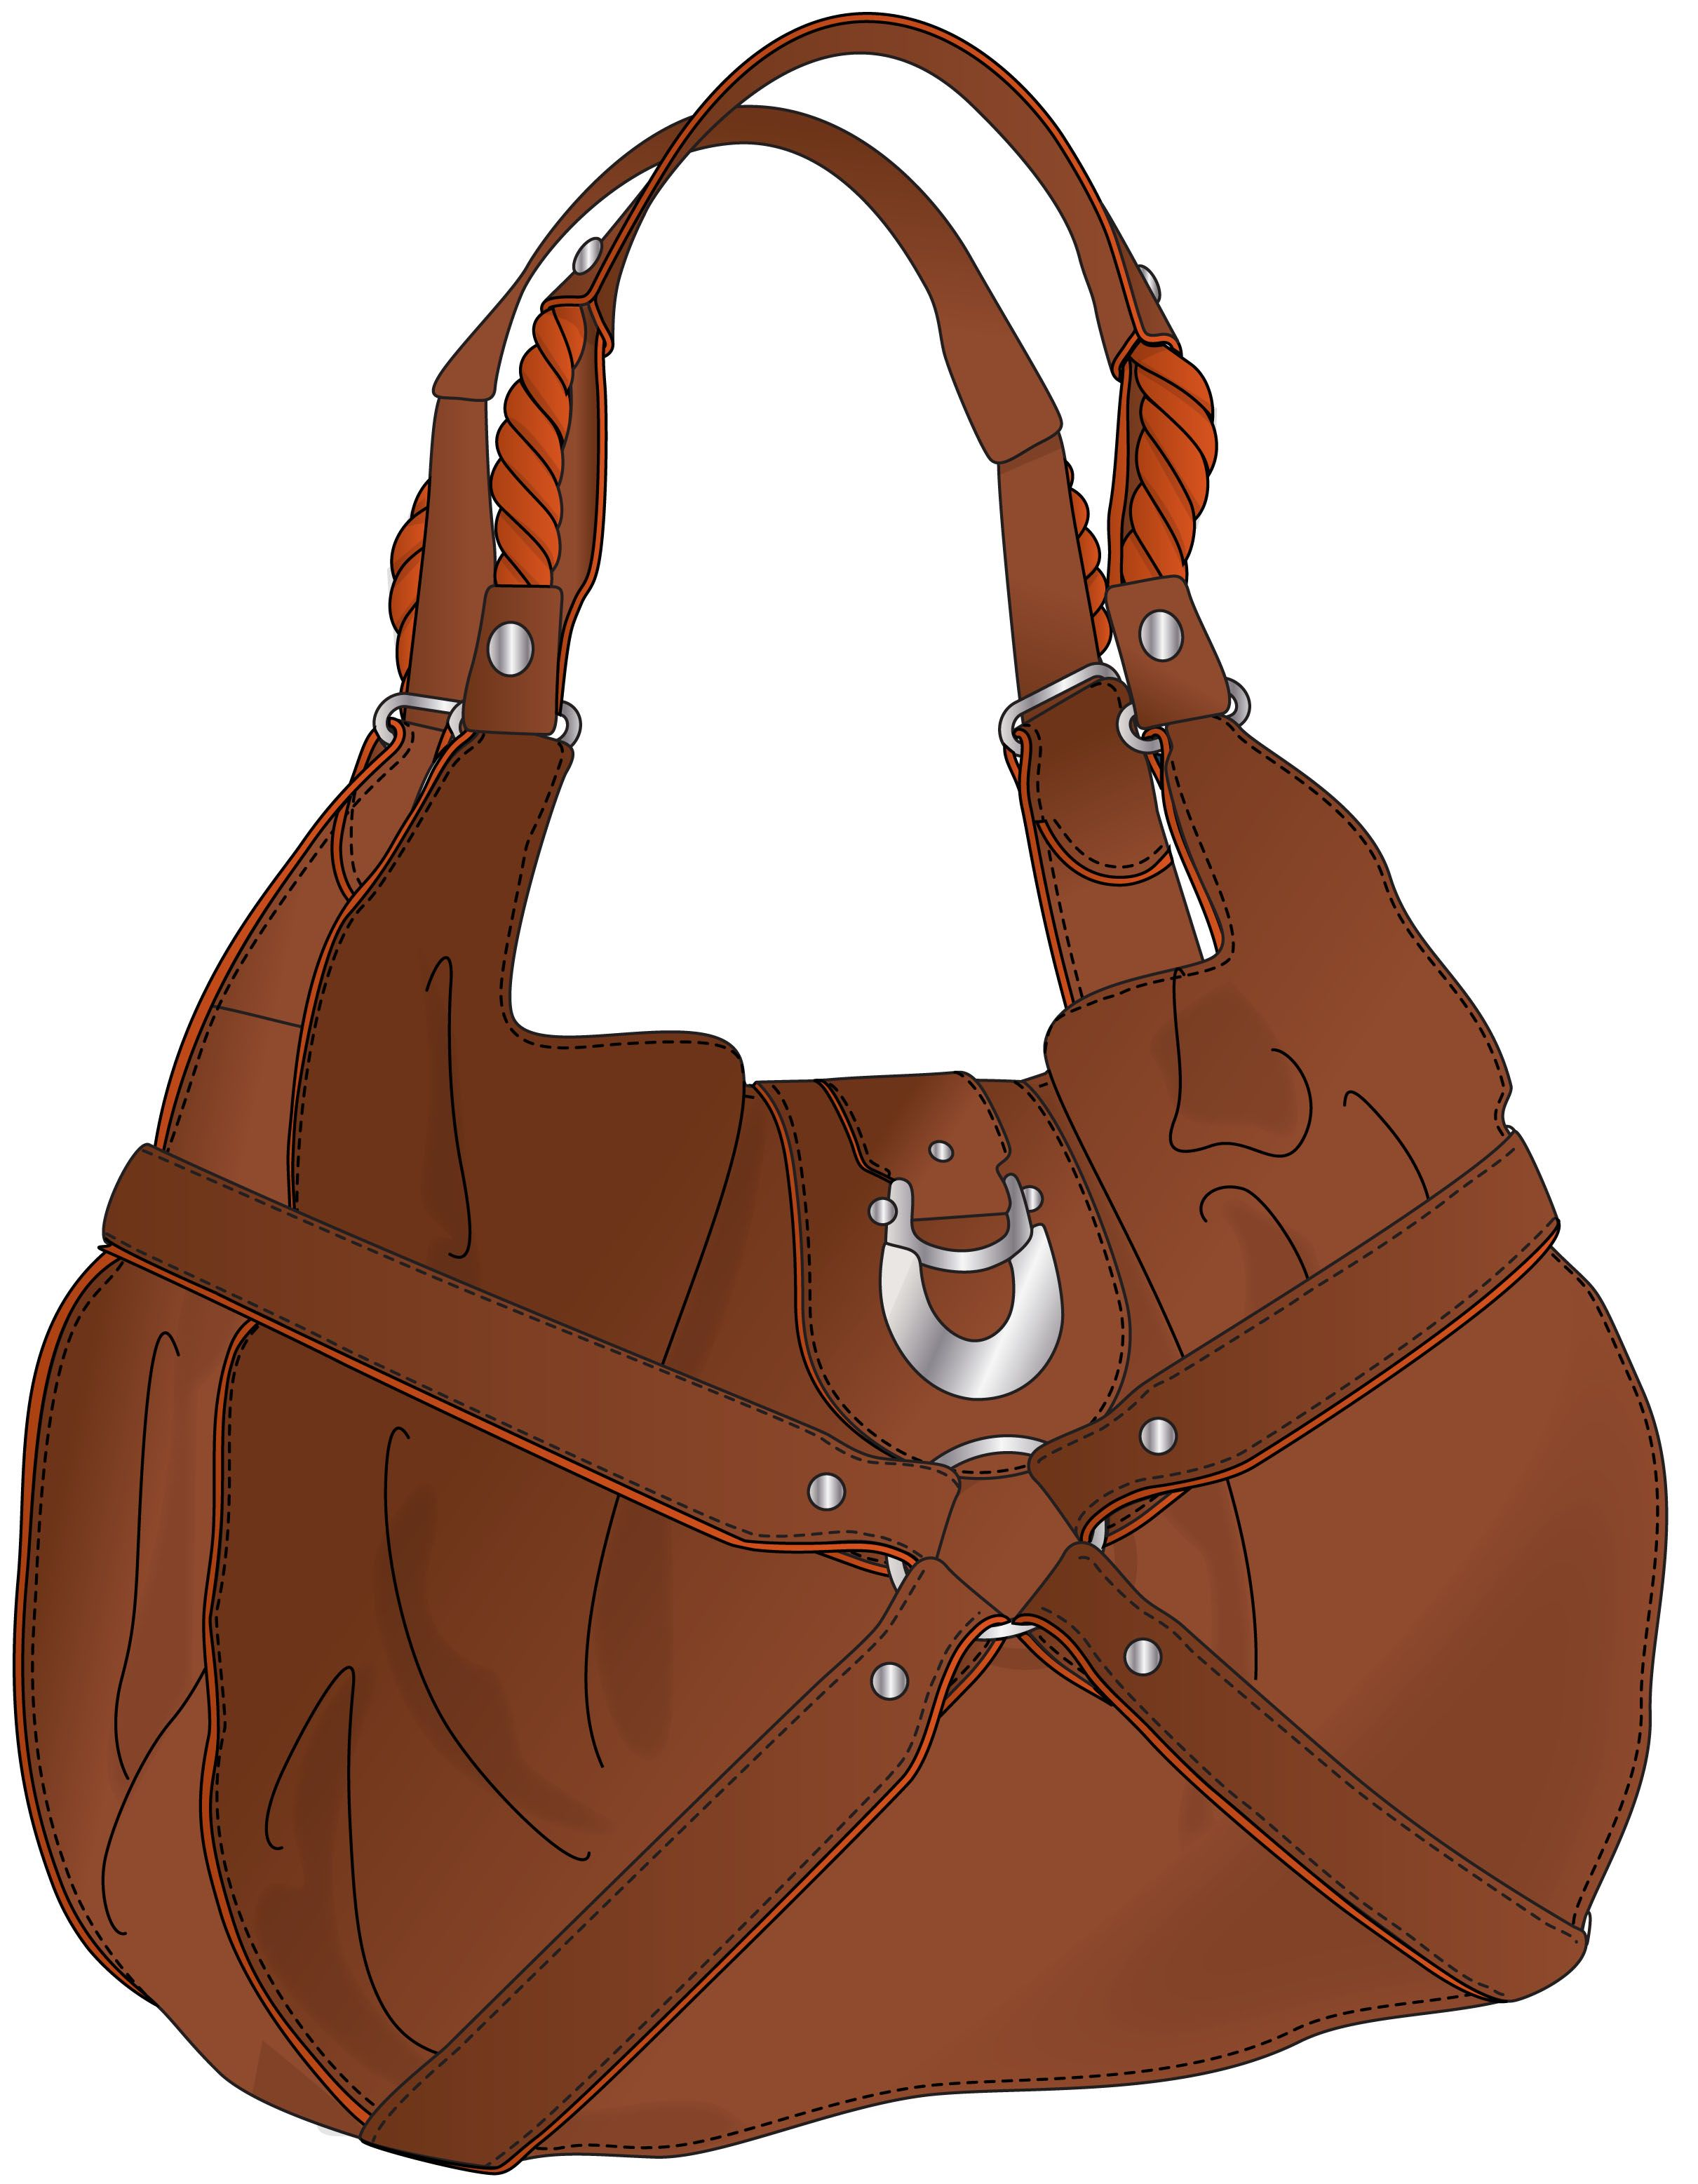 2421x3114 leather hobo bag bags, totes and purses bags, drawing bag